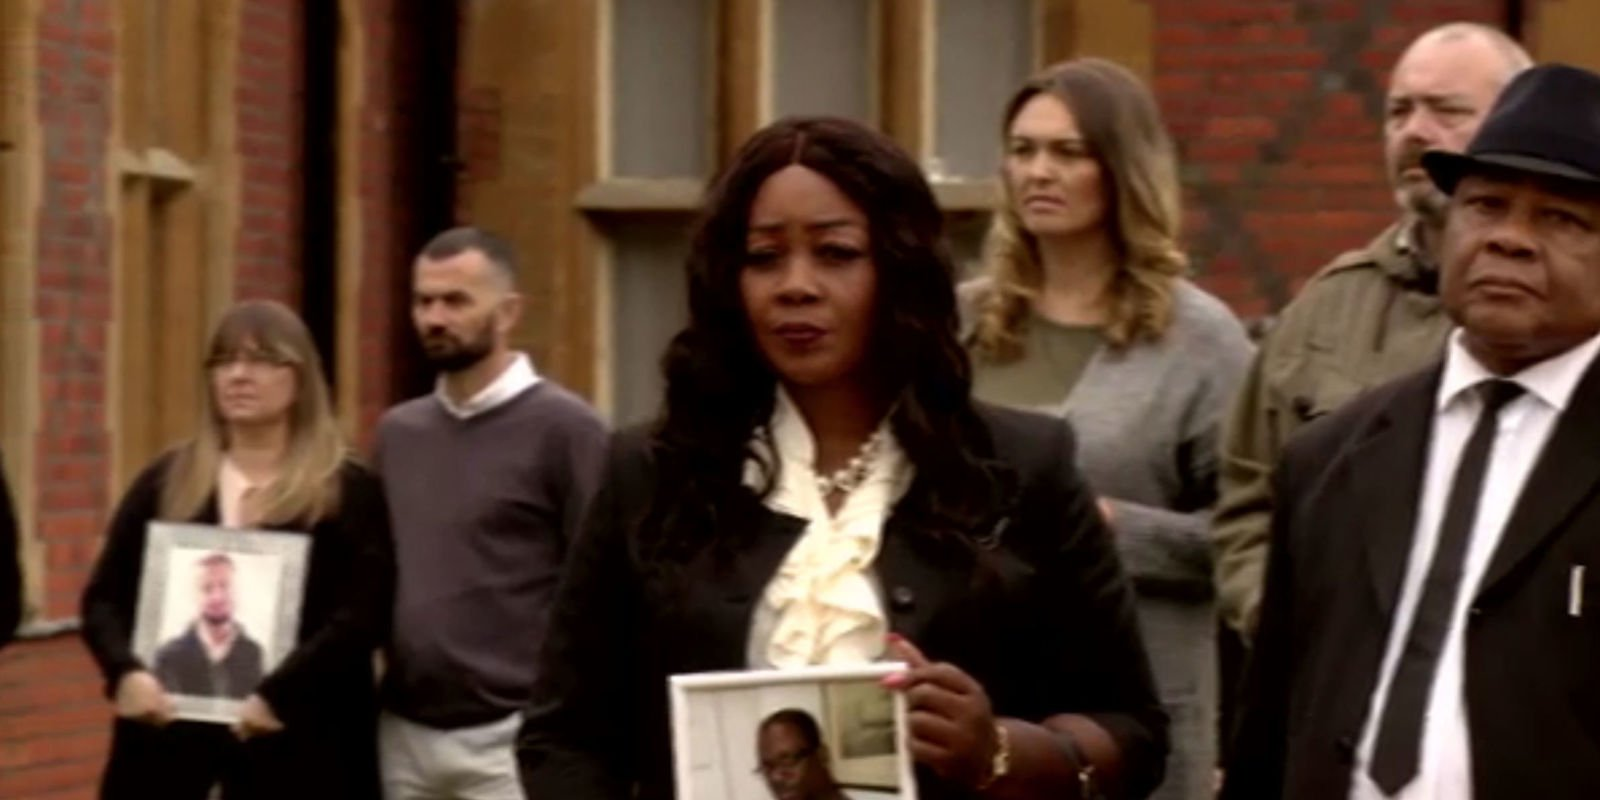 EastEnders viewers are moved as soap breaks its usual format to raise awareness of knife crime